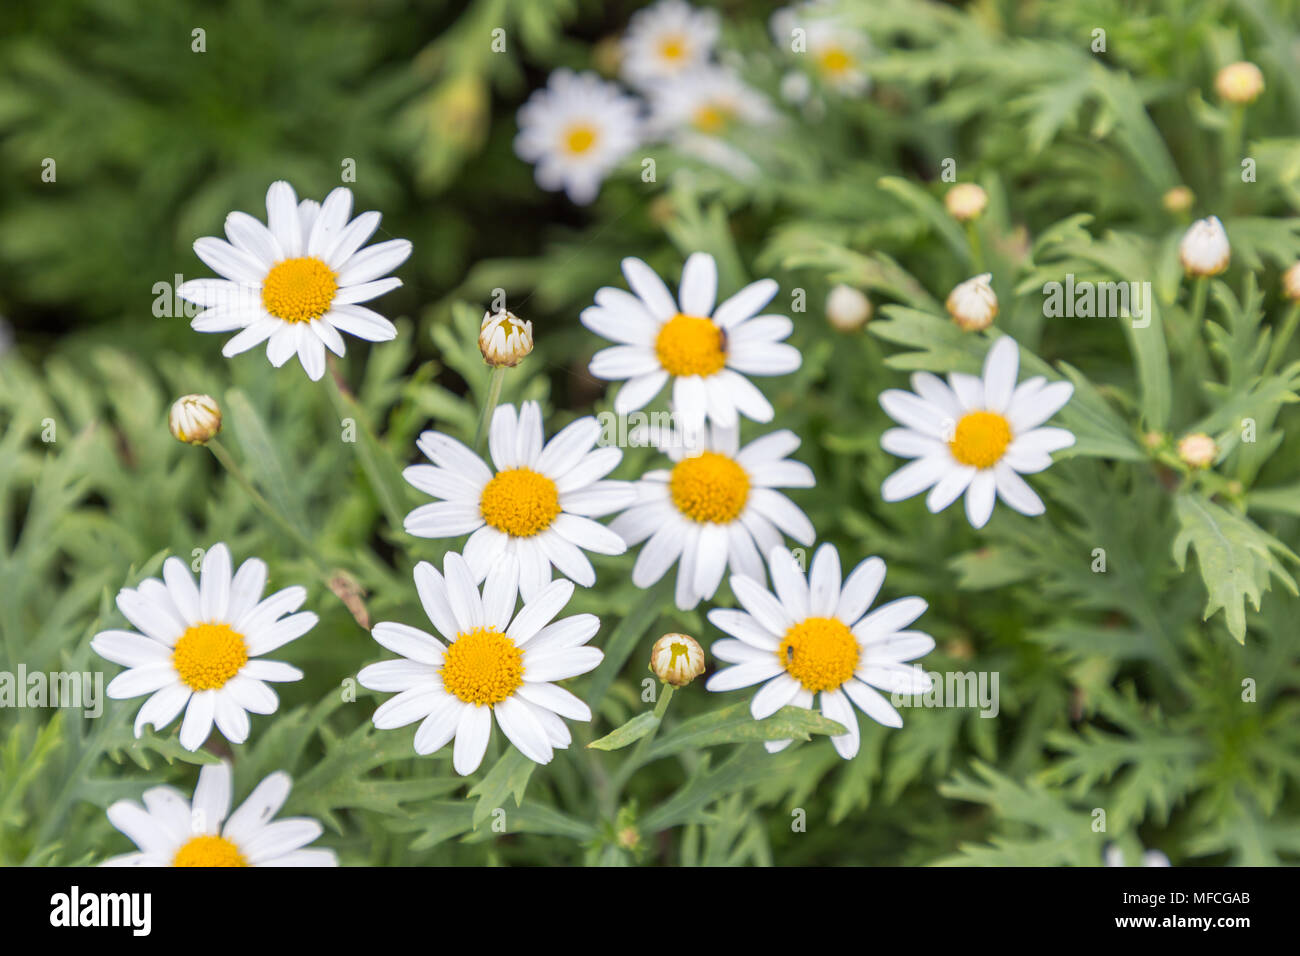 Flower And Green Leaf Background In Garden At Sunny Summer Or Spring